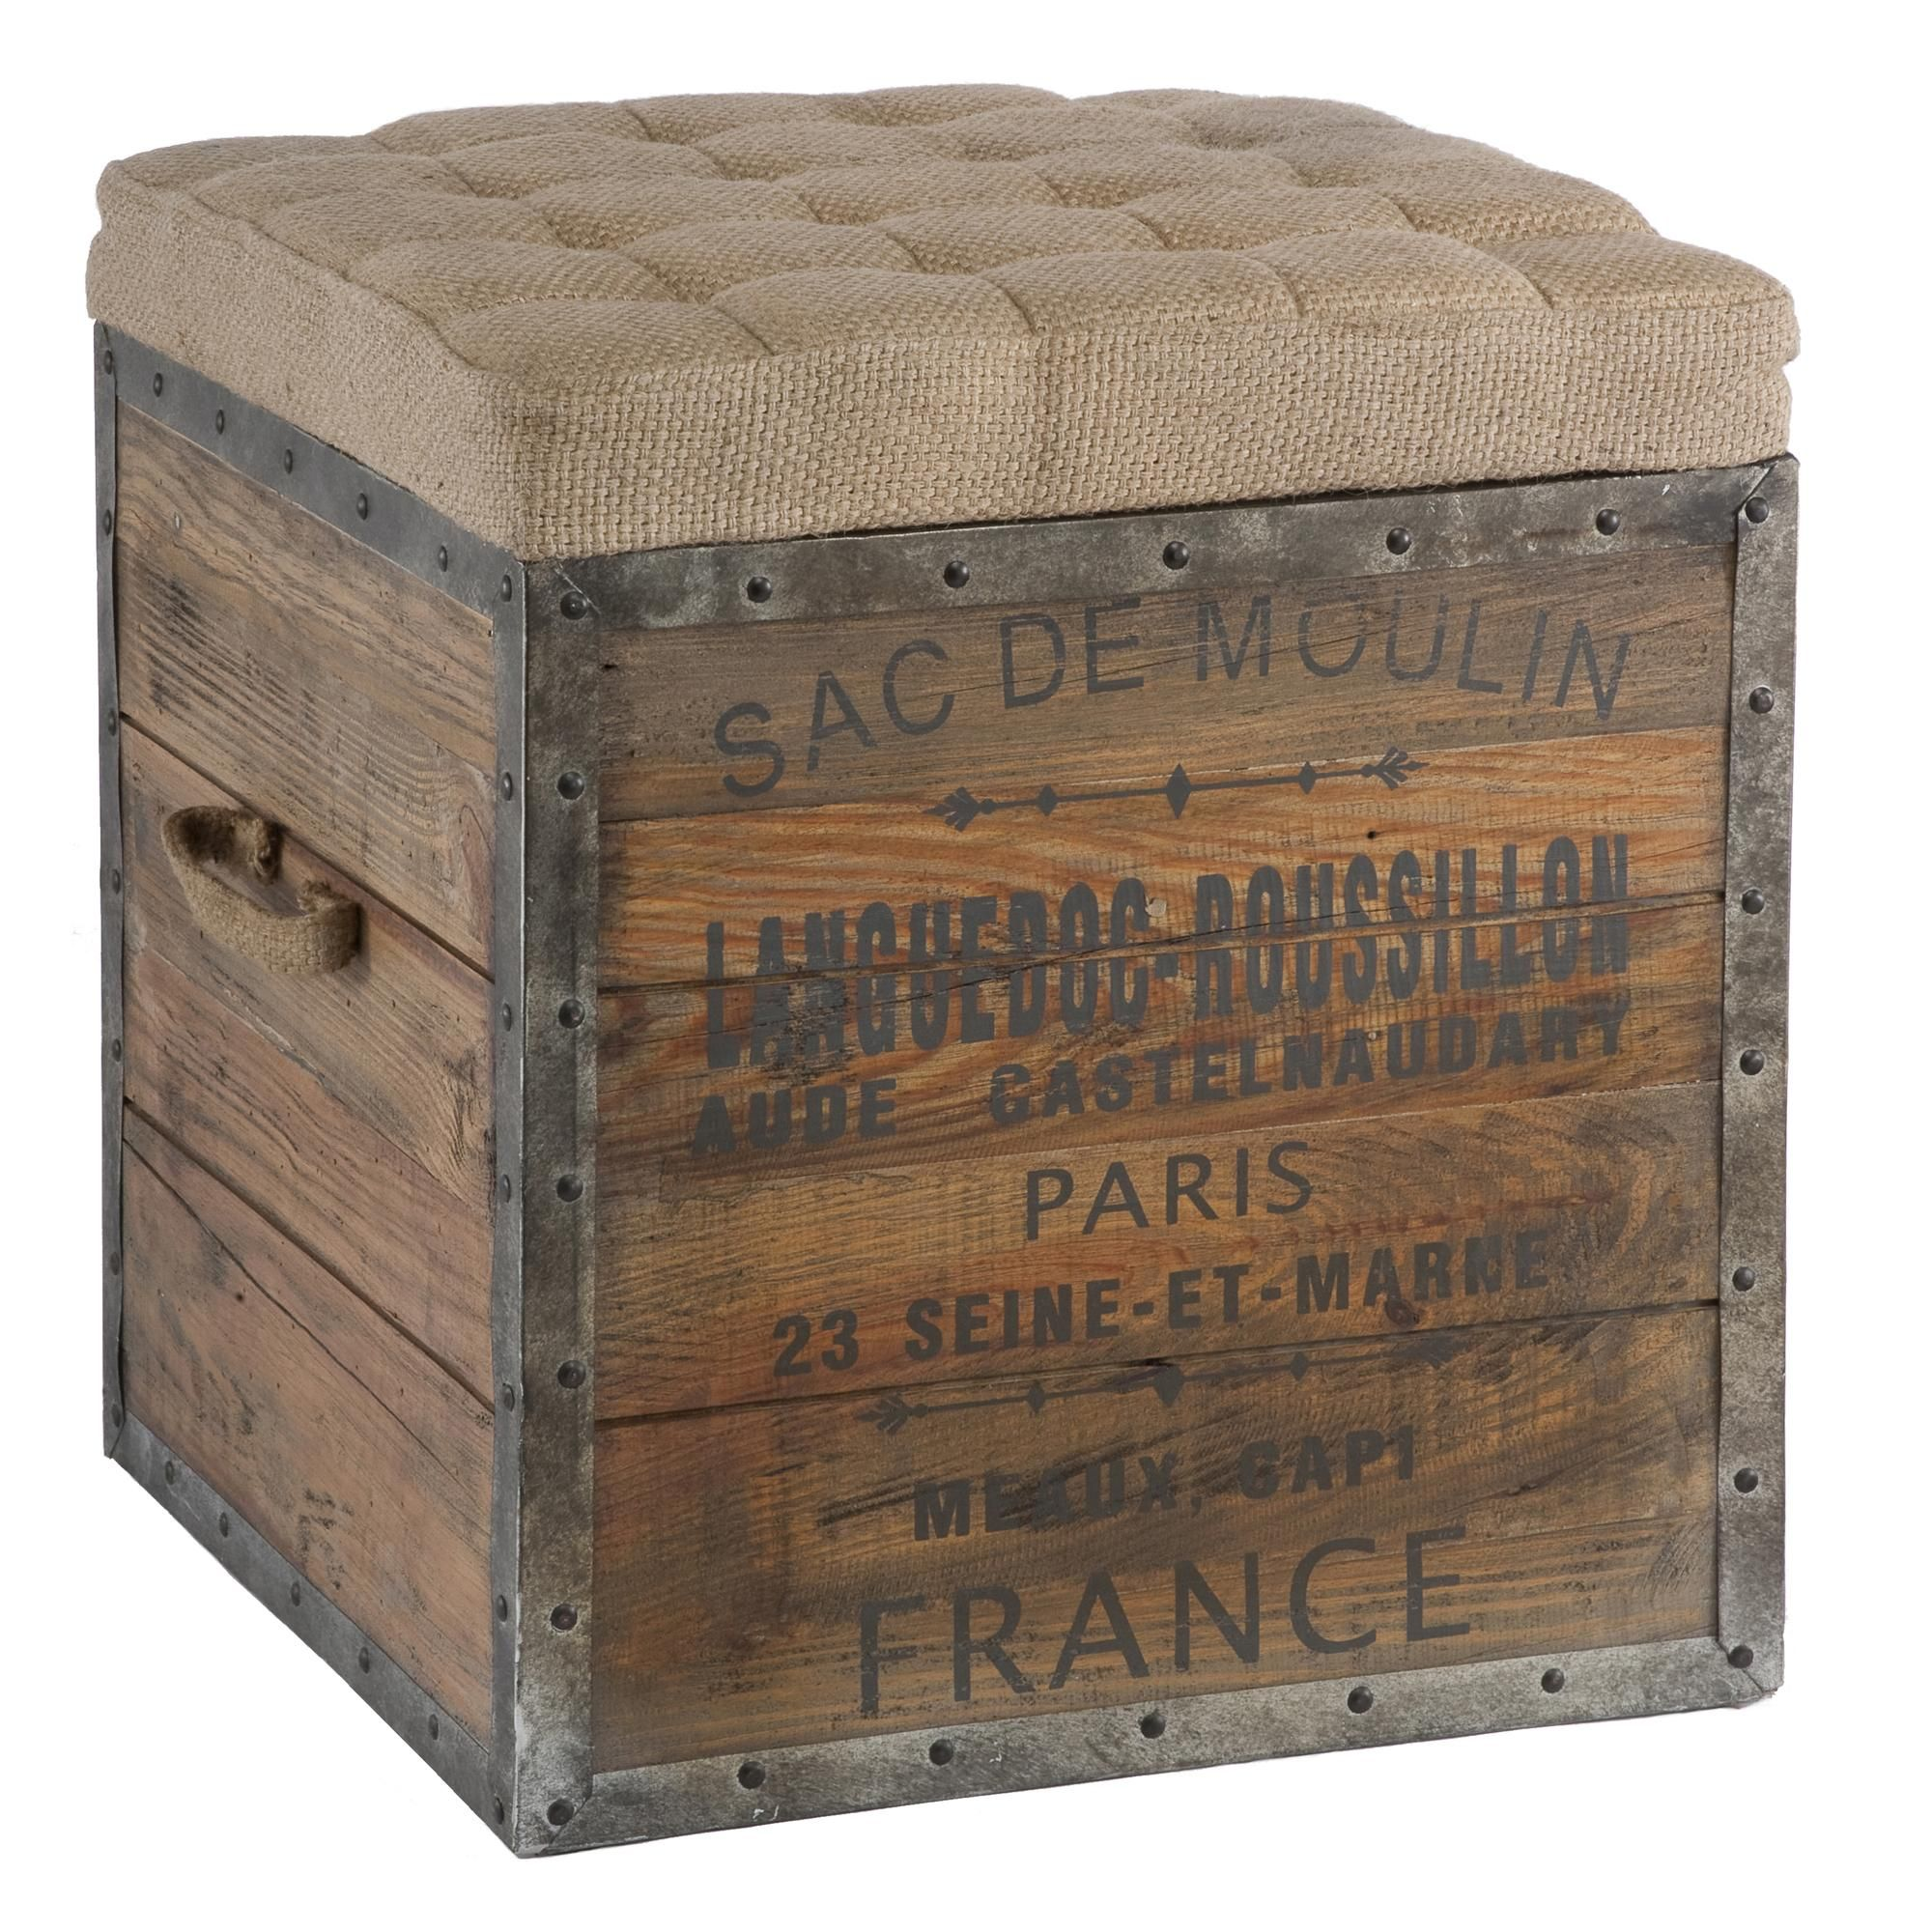 Distressed Wood Storage Ottoman ~ Aidan gray sac de moulin wooden cube wood crates